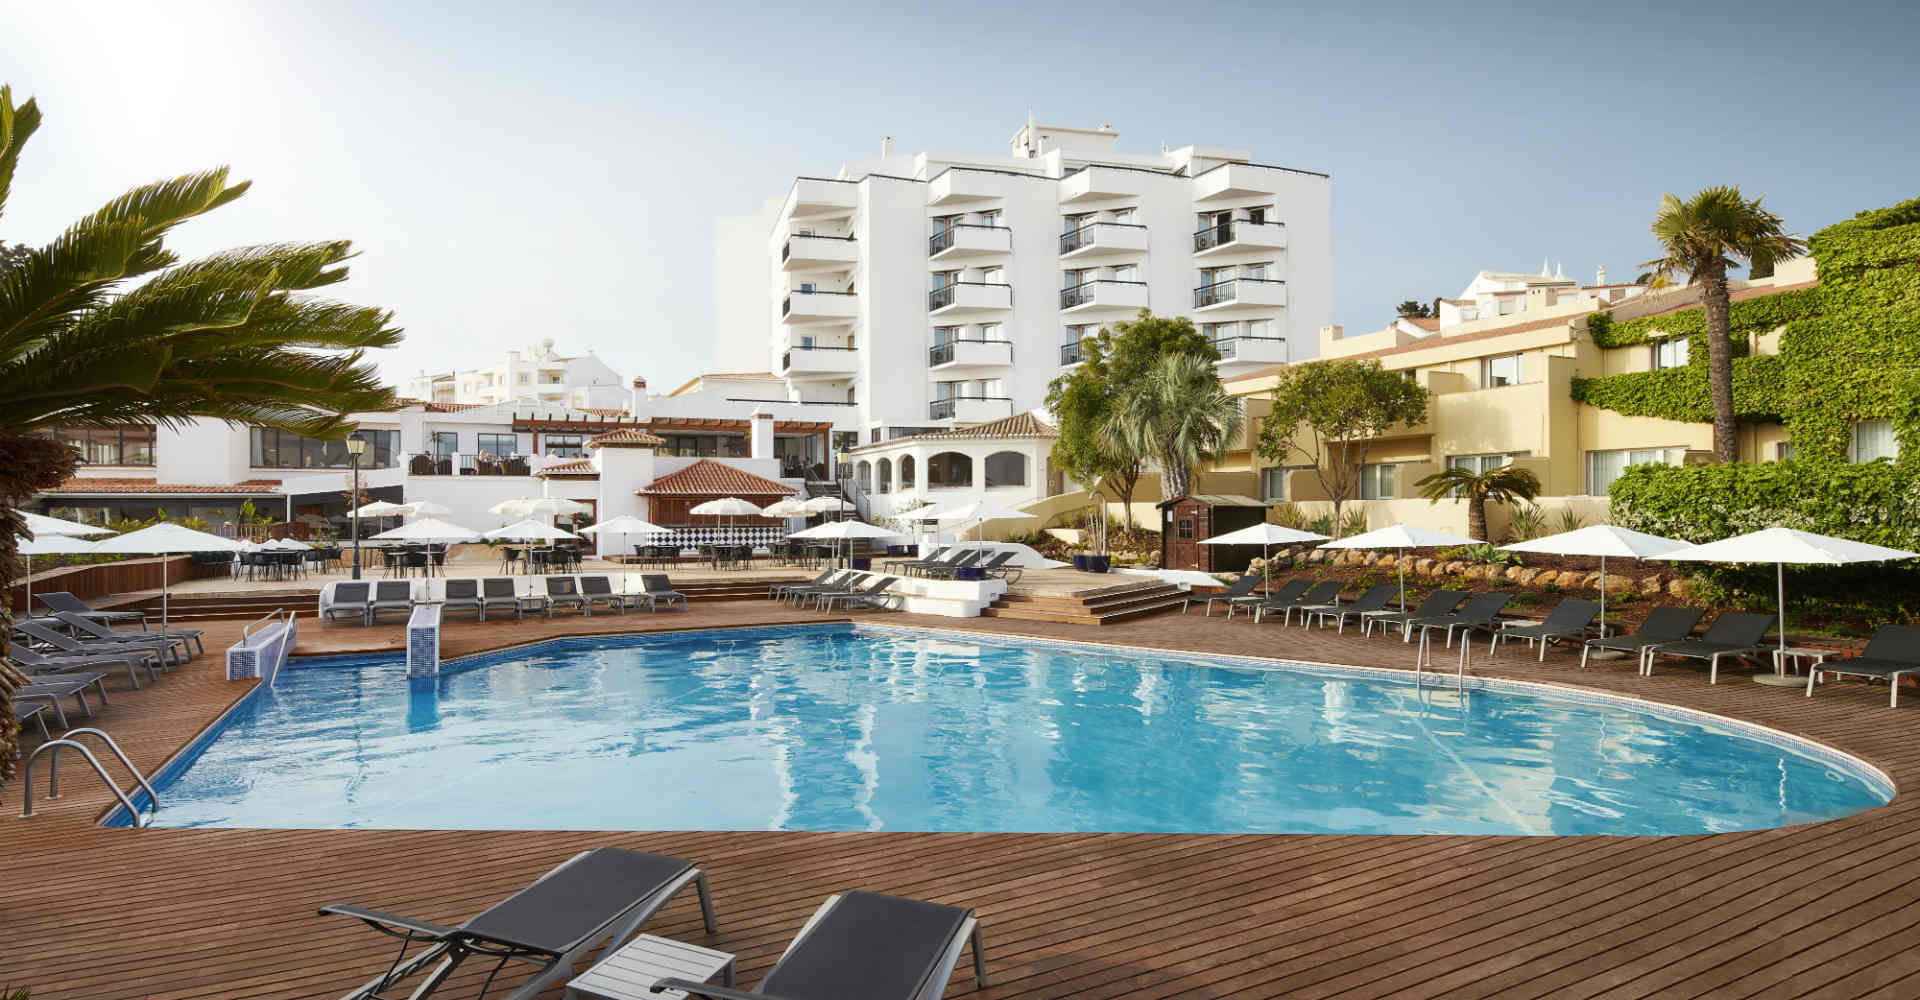 Tivoli lagos algarve resort 4 star hotel in lagos portugal - 4 star hotels in lisbon with swimming pool ...